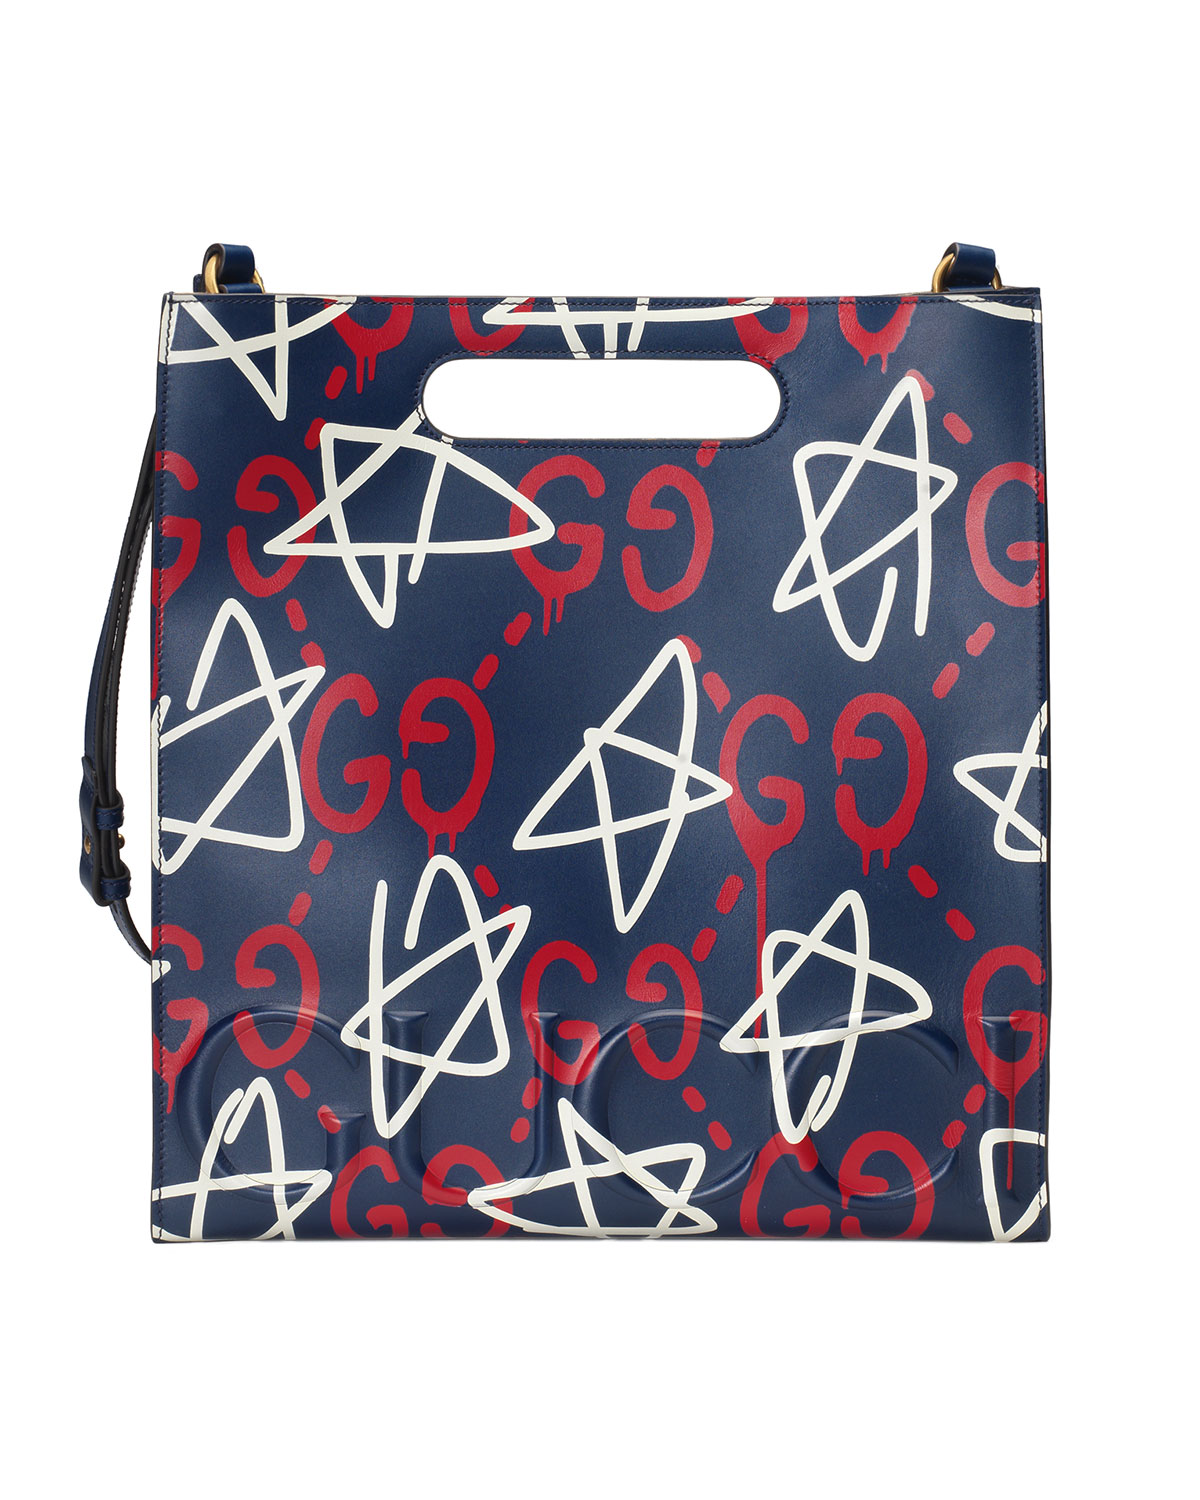 ea4699c06 Gucci GucciGhost Small Leather Tote Bag, Blue/Red | Neiman Marcus